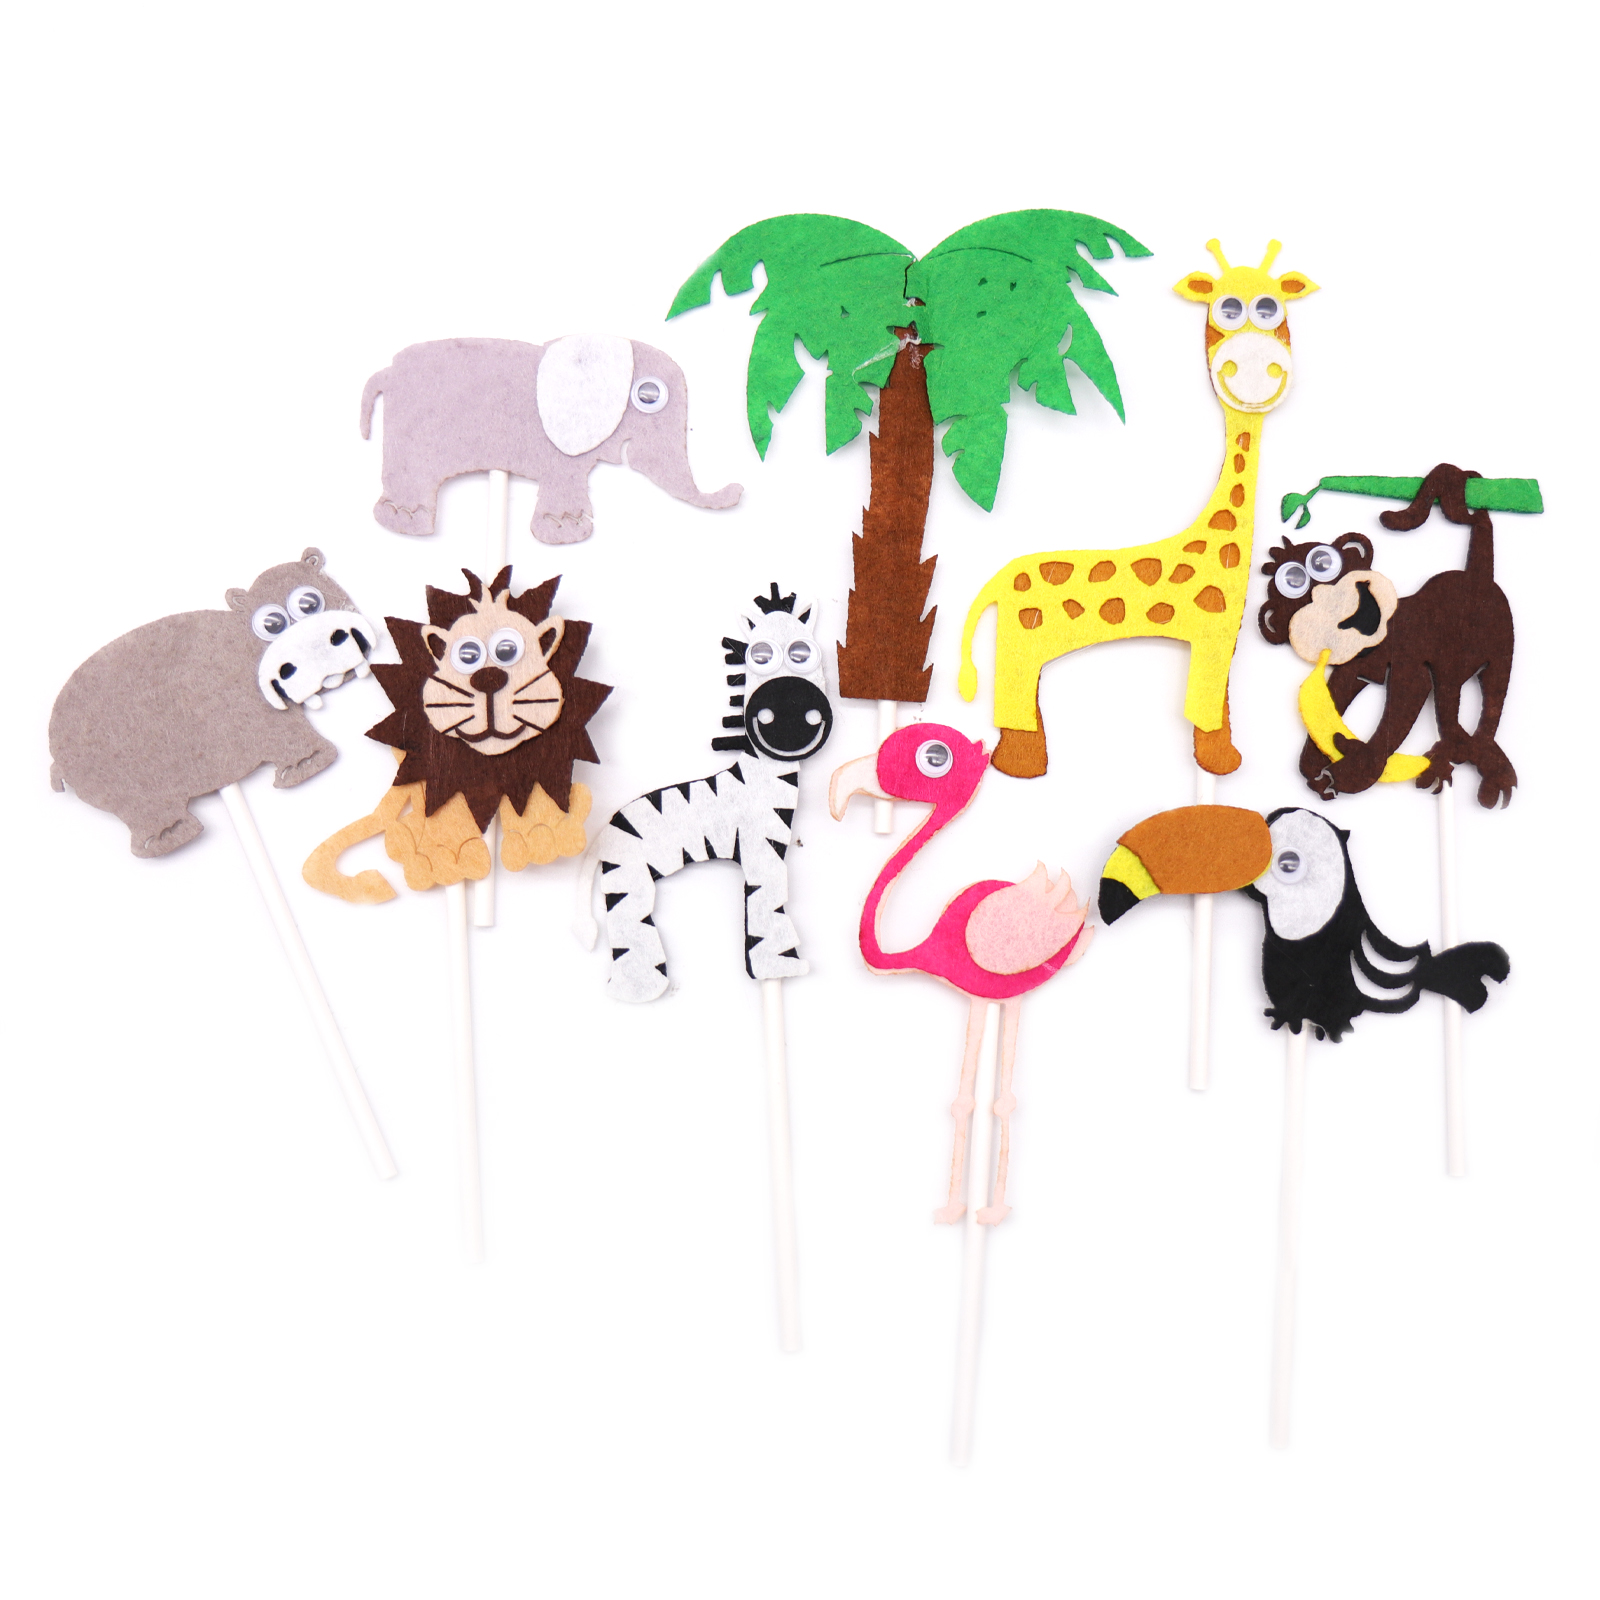 1pcs Birthday Cake Card Animal Cake Topper Kid Birthday Party Wild Animal Jungle Safari Party Supplies Jungle DIY Party Decor art